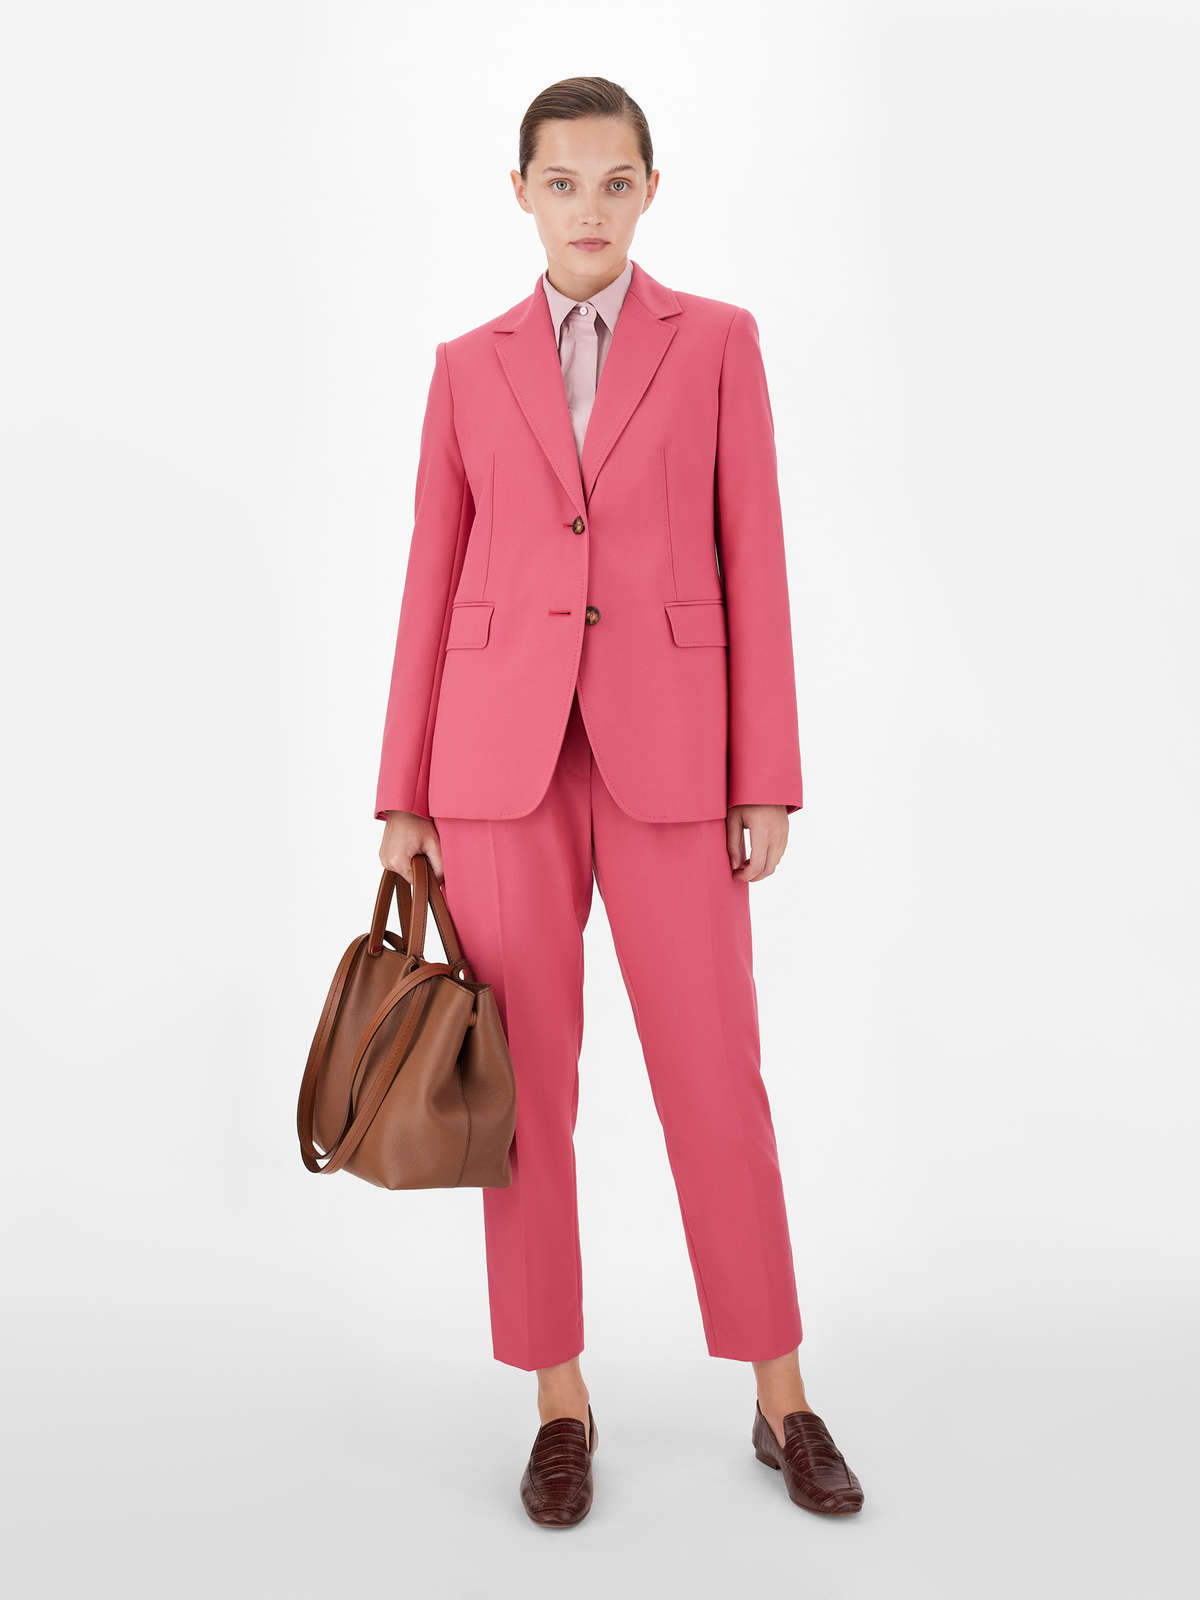 Cotton crepe jacket - Max Mara